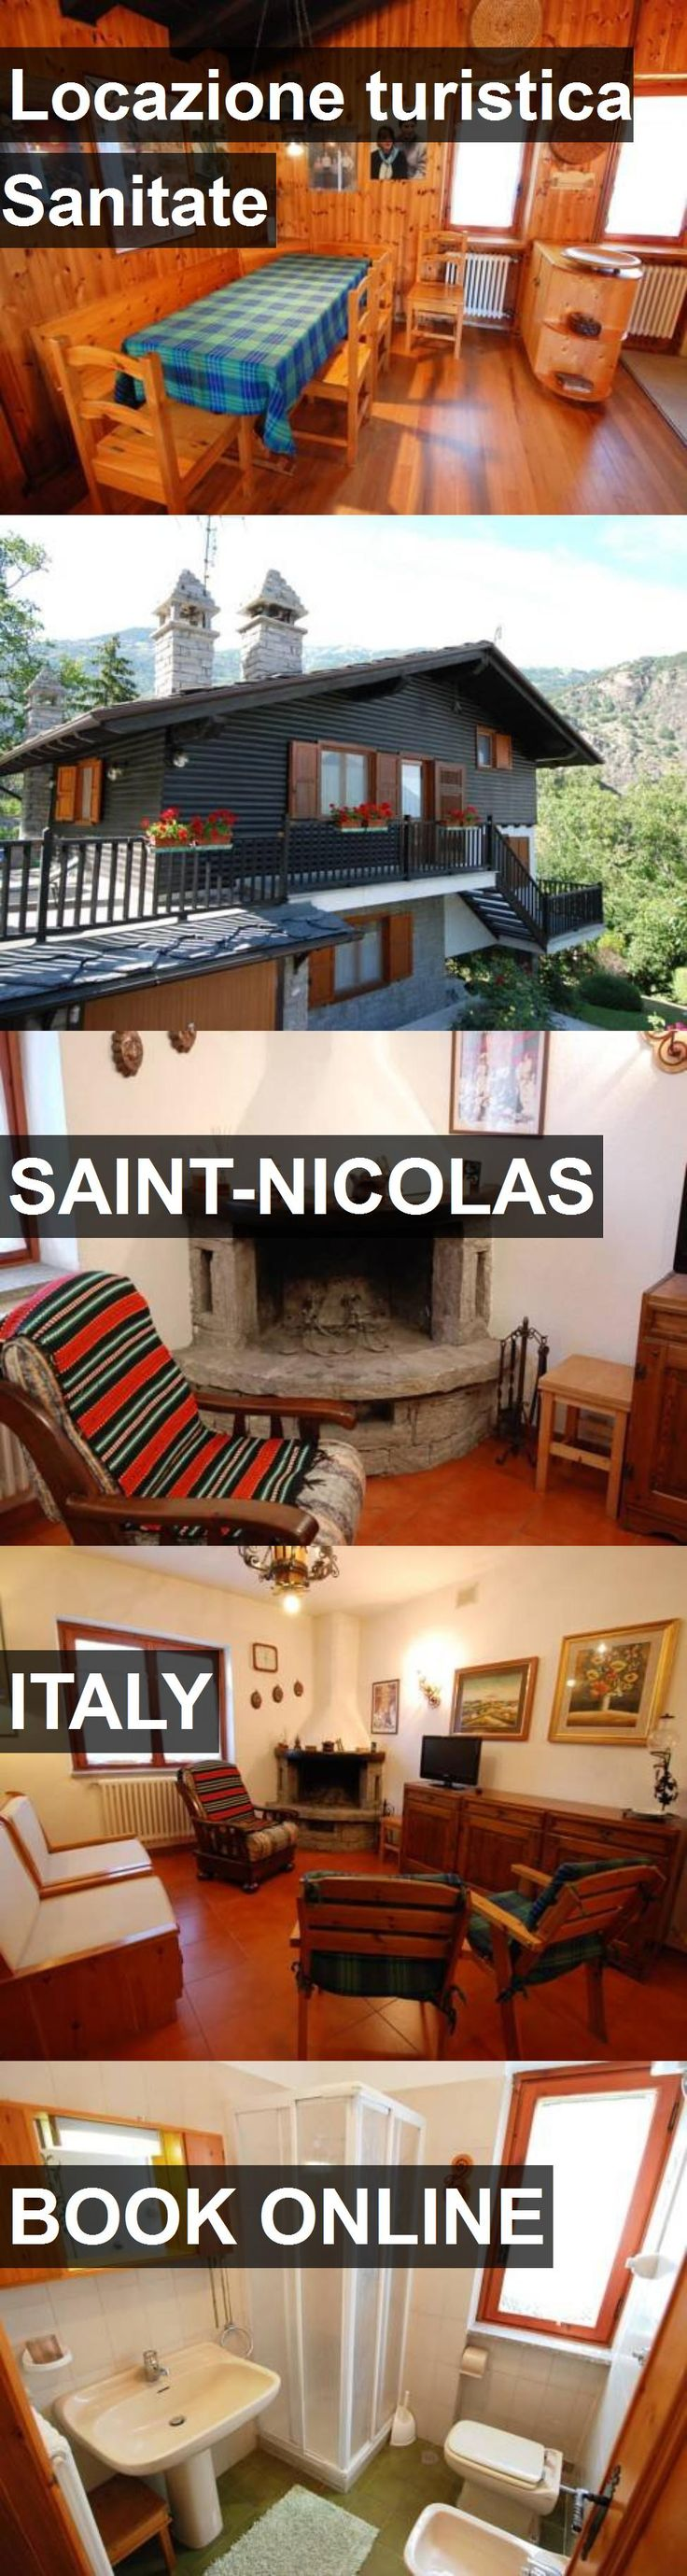 Hotel Locazione turistica Sanitate in Saint-Nicolas, Italy. For more information, photos, reviews and best prices please follow the link. #Italy #Saint-Nicolas #travel #vacation #hotel